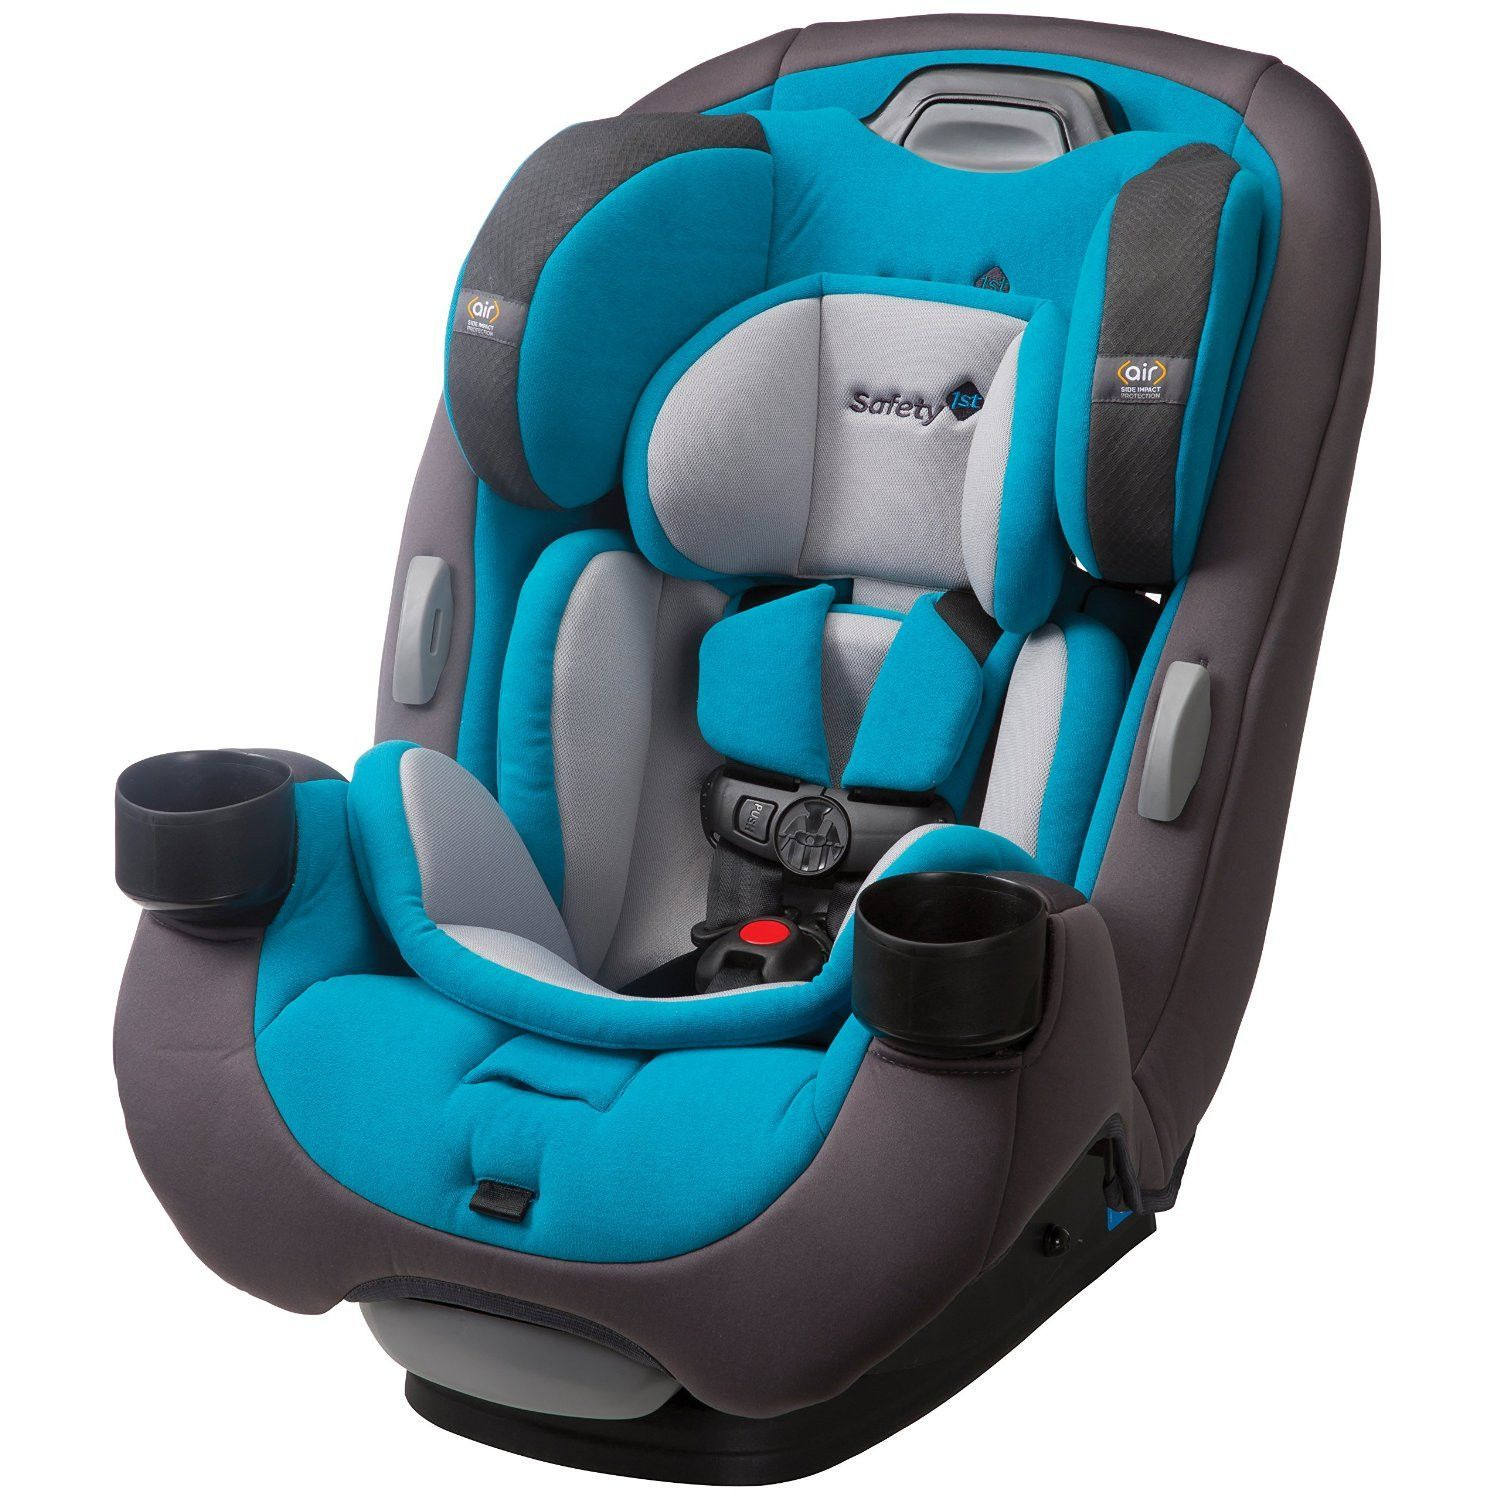 Safety 1st Grow and Go™ Air Evening Tide Convertible Infant Car Seat